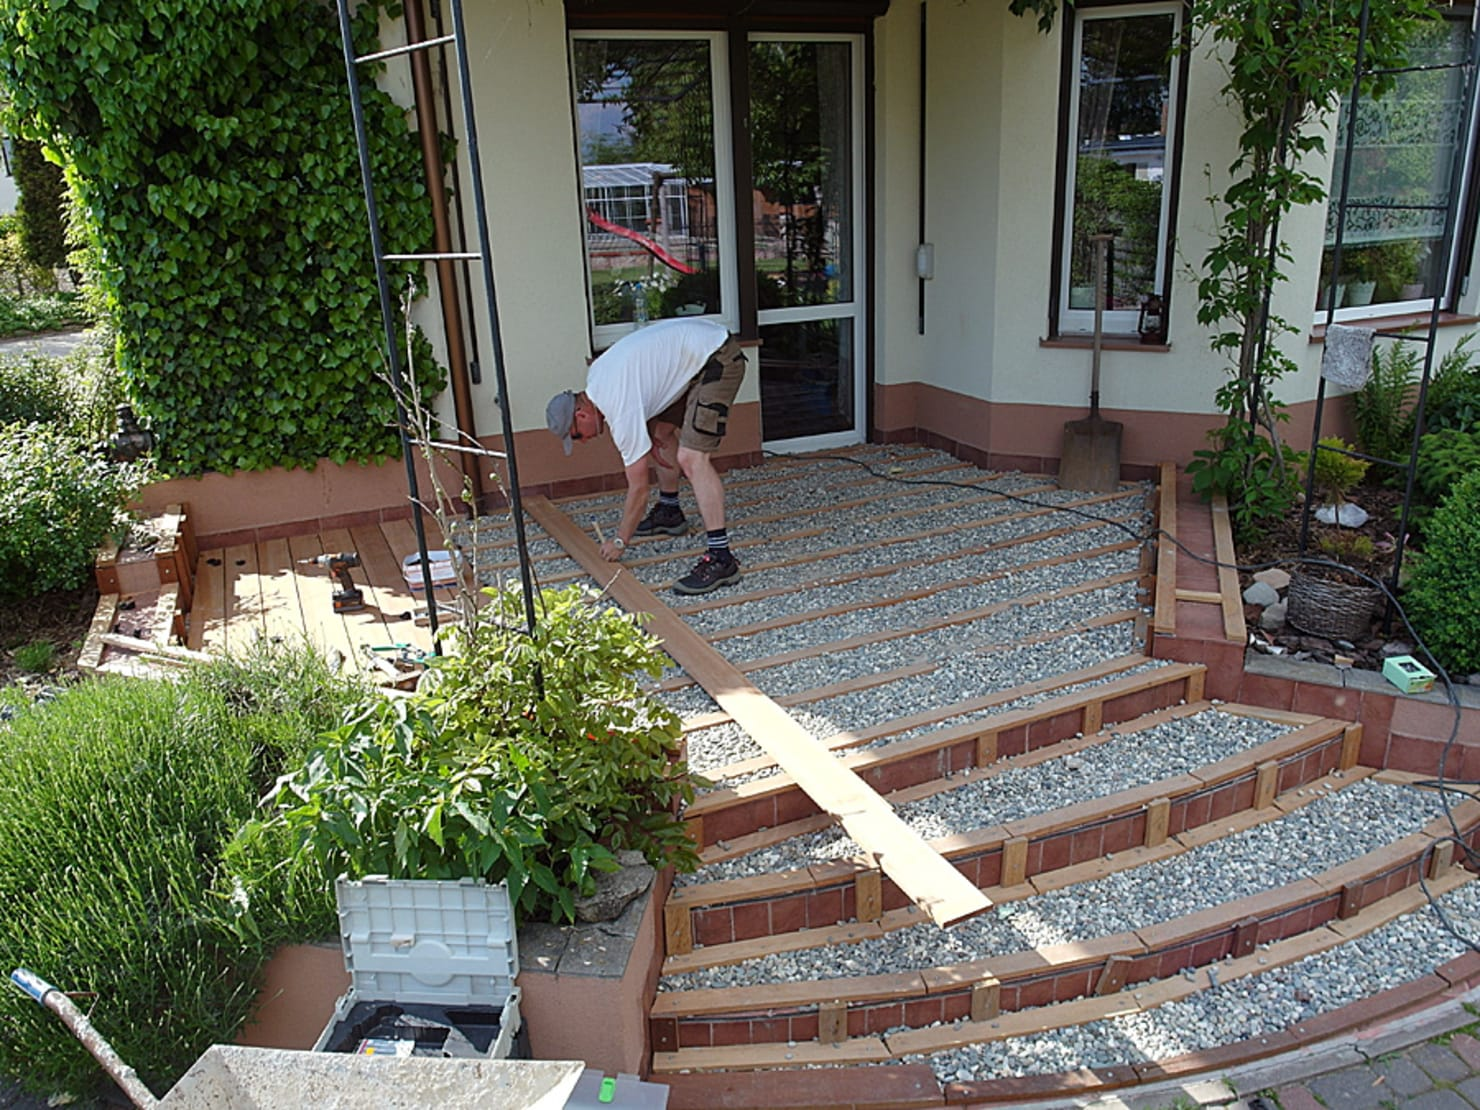 Home improvement: 8 steps to your own wooden deck